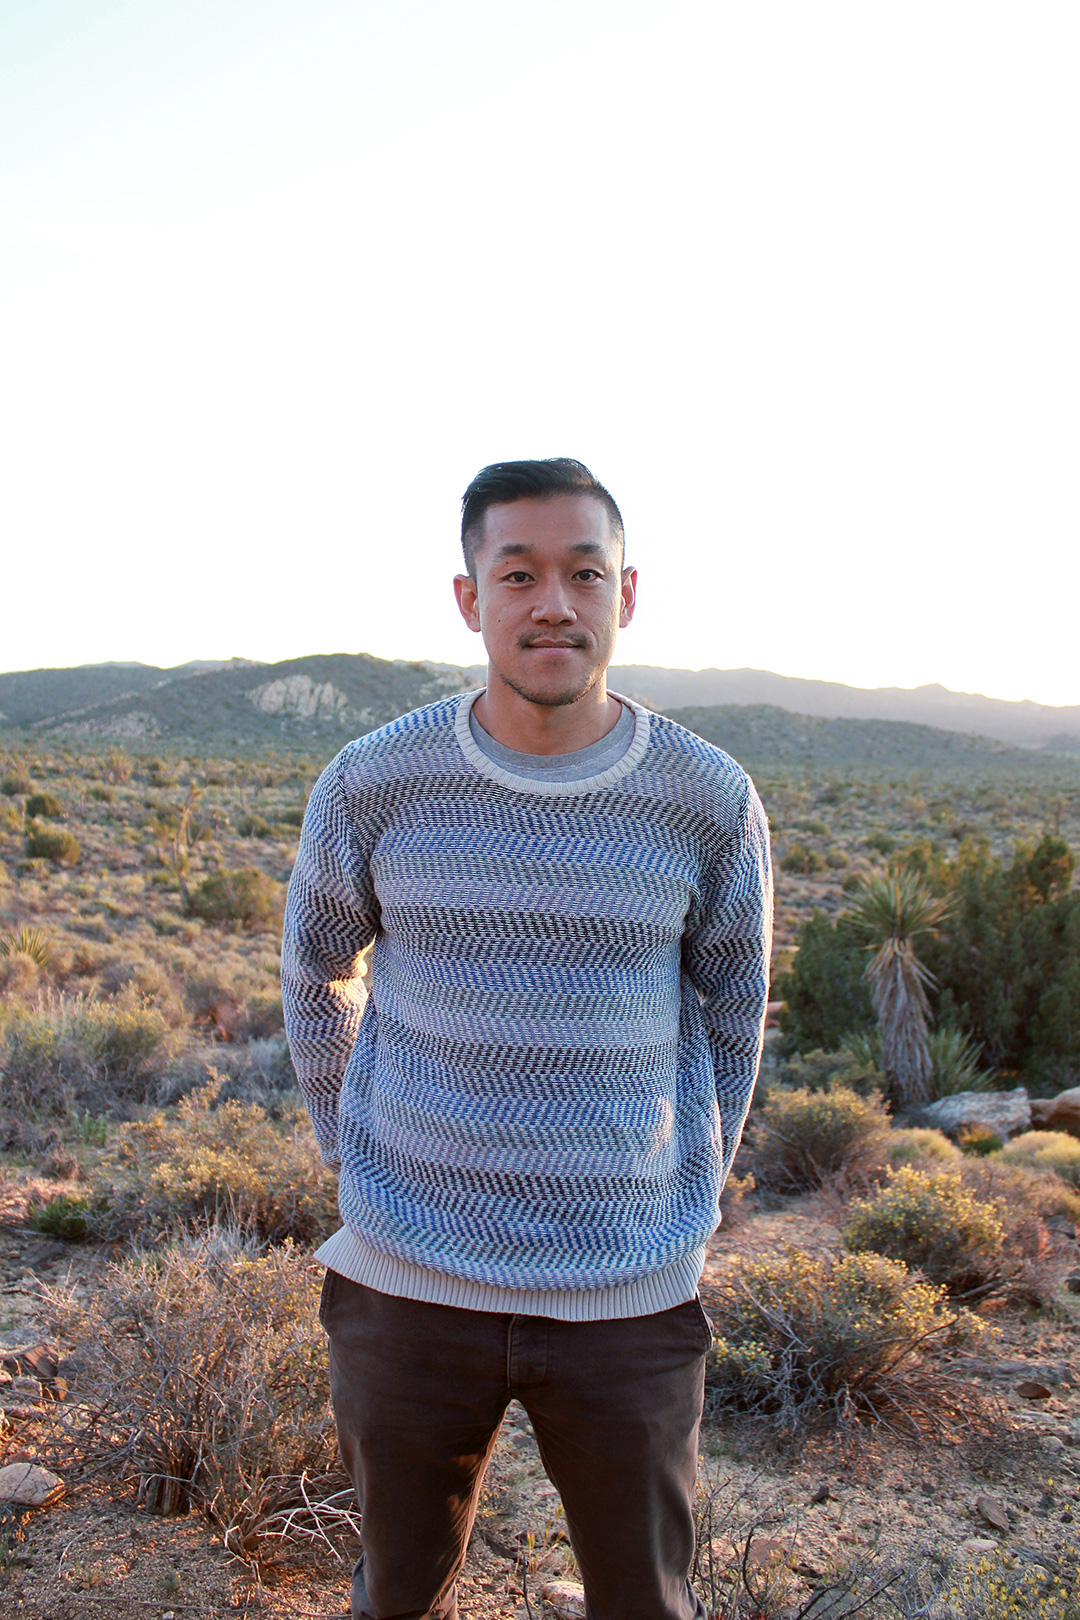 Urban Outfitters Sweater for the chilly desert nights